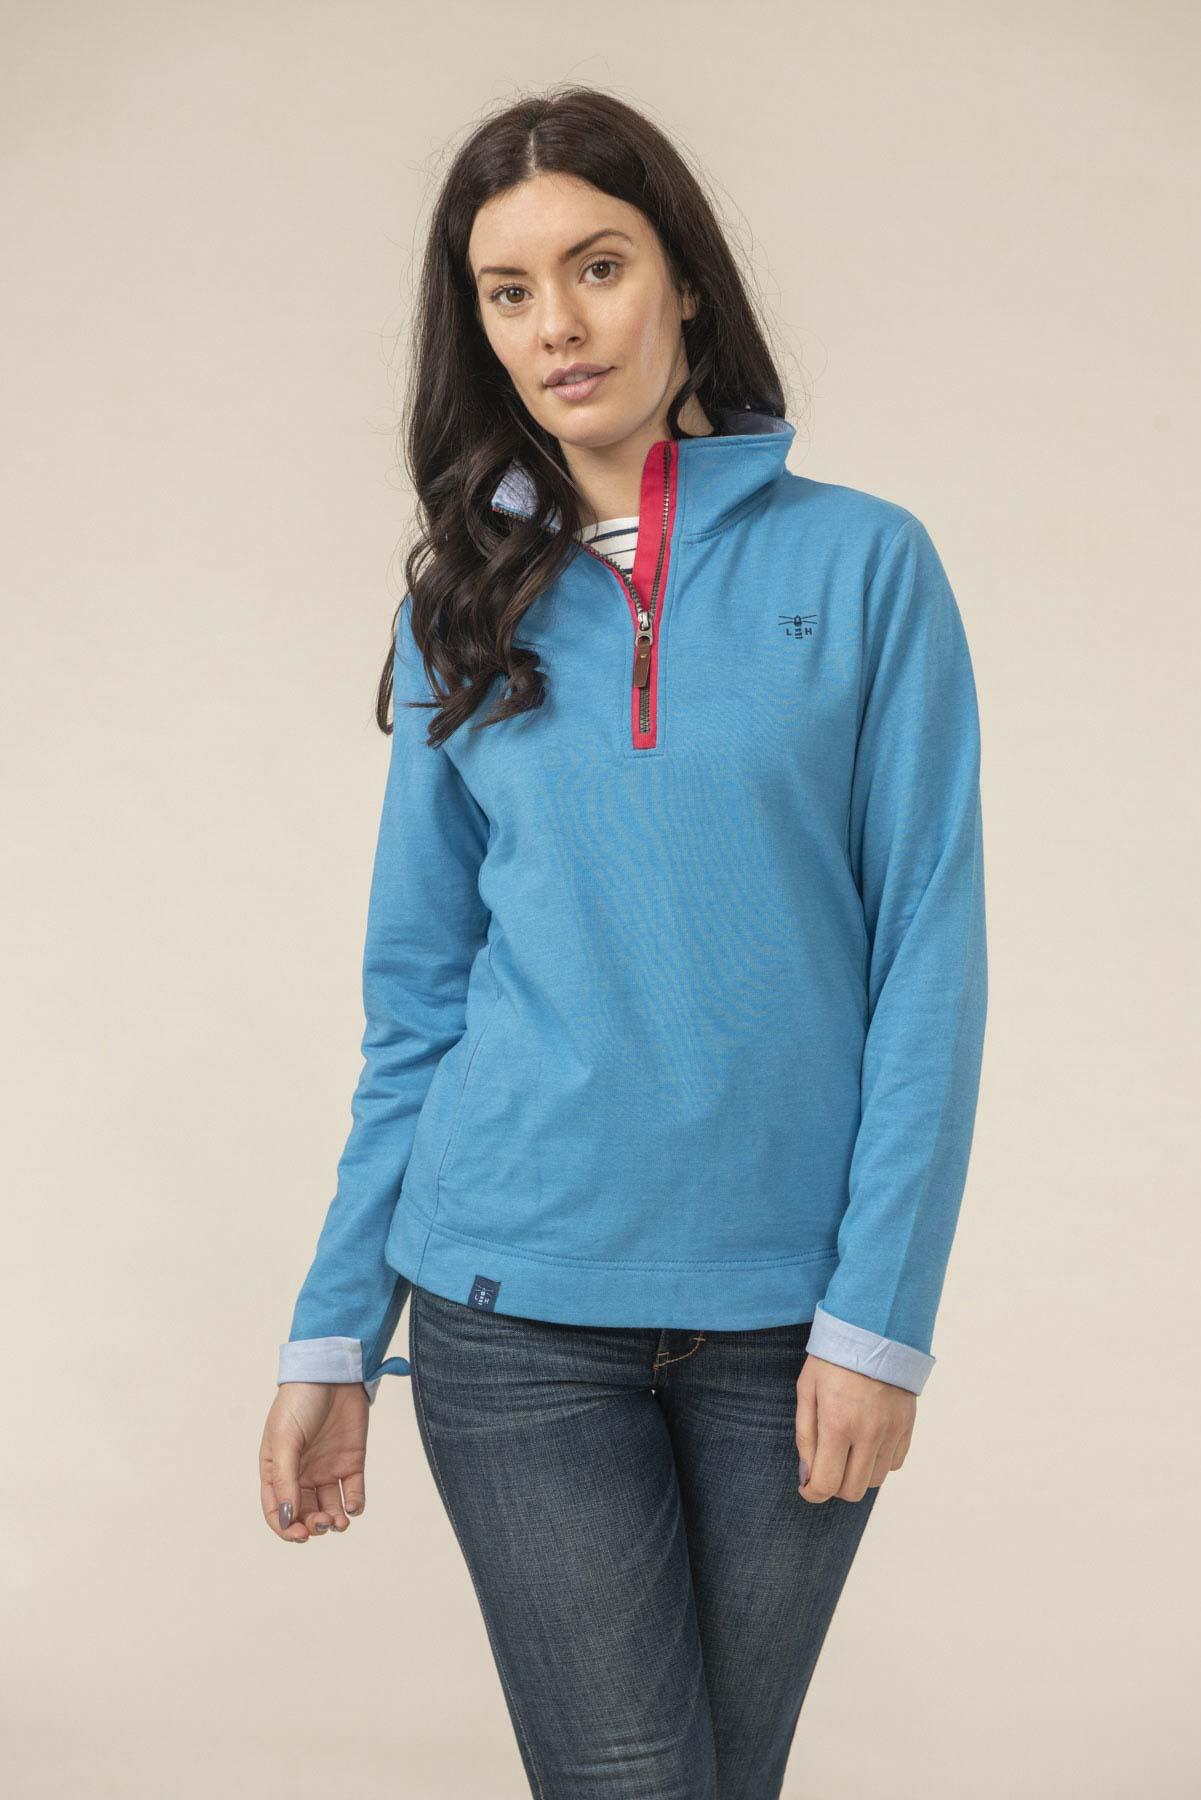 Lighthouse Shore - Women's Sweatshirt - Blue